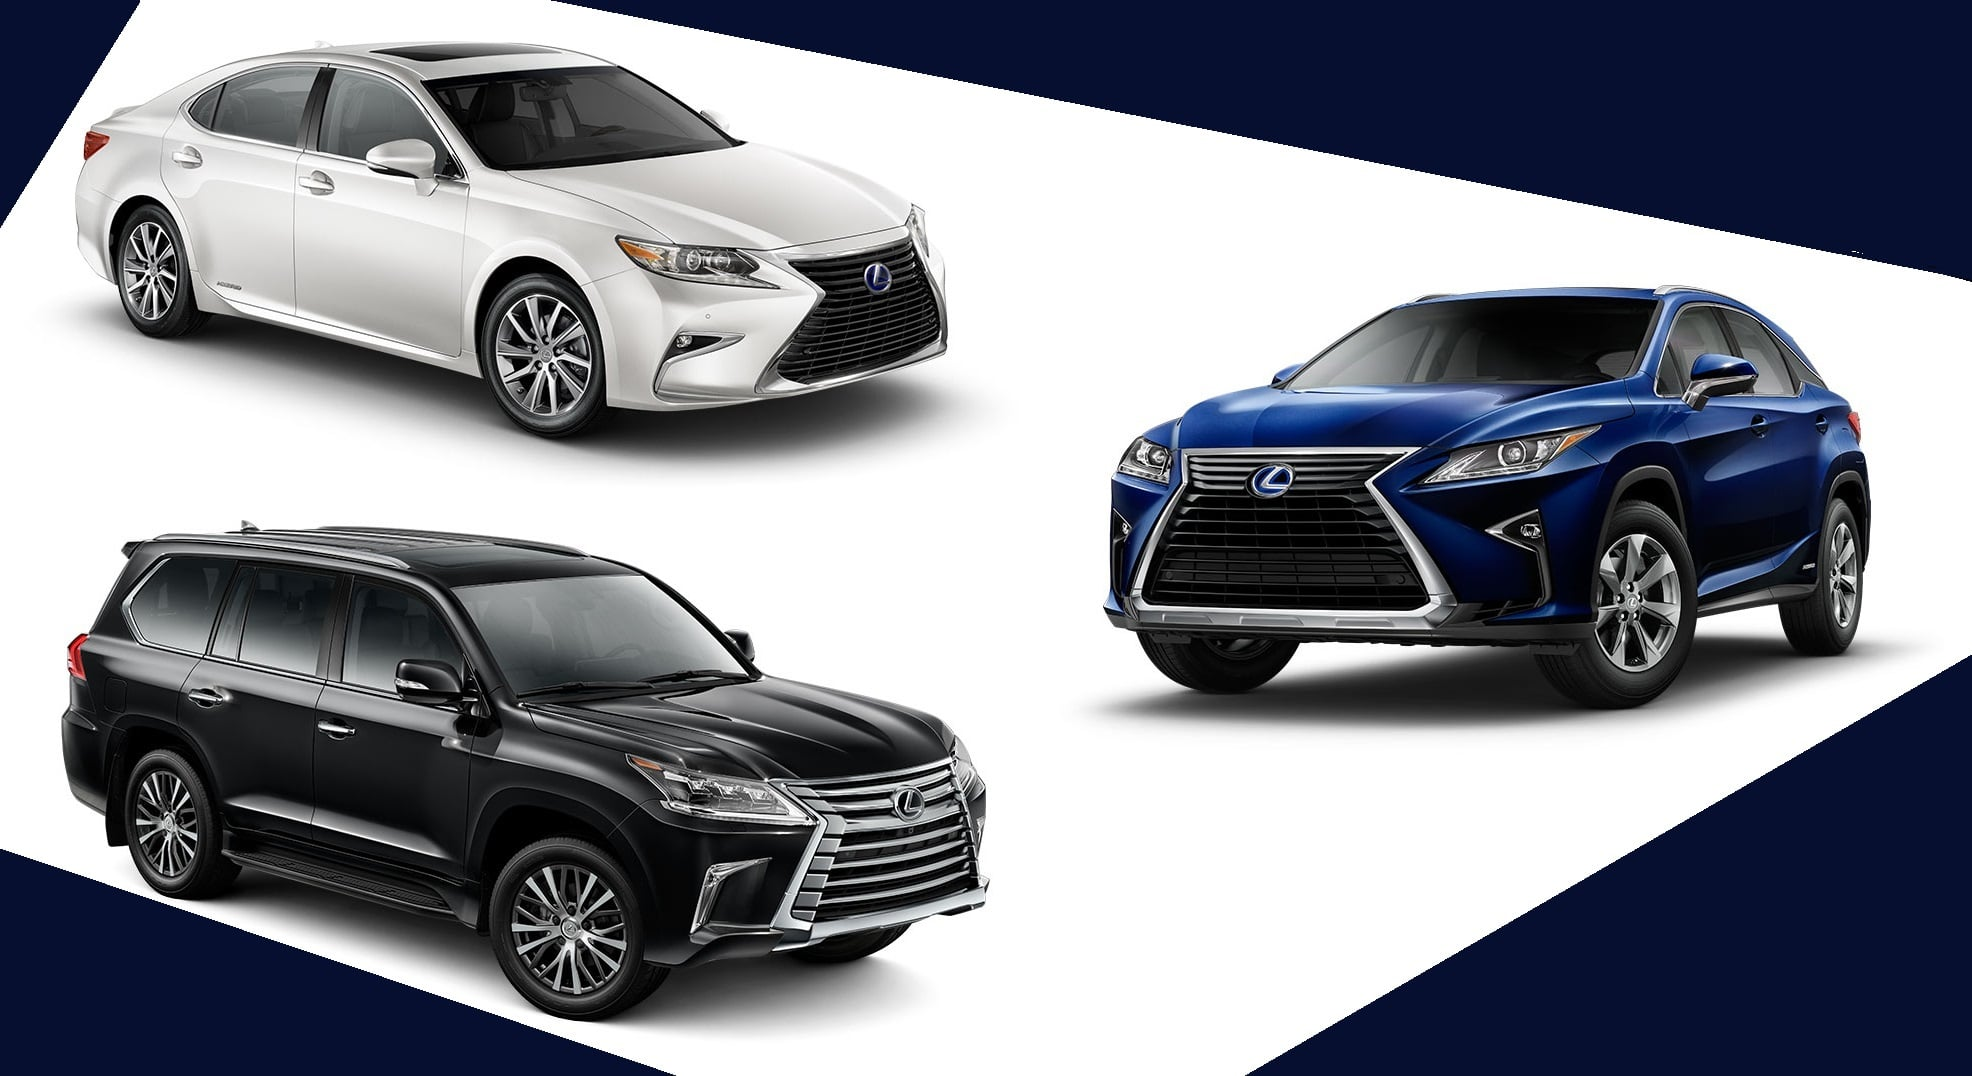 lexus india price launch on march 24 specifications price of lexus models in india. Black Bedroom Furniture Sets. Home Design Ideas